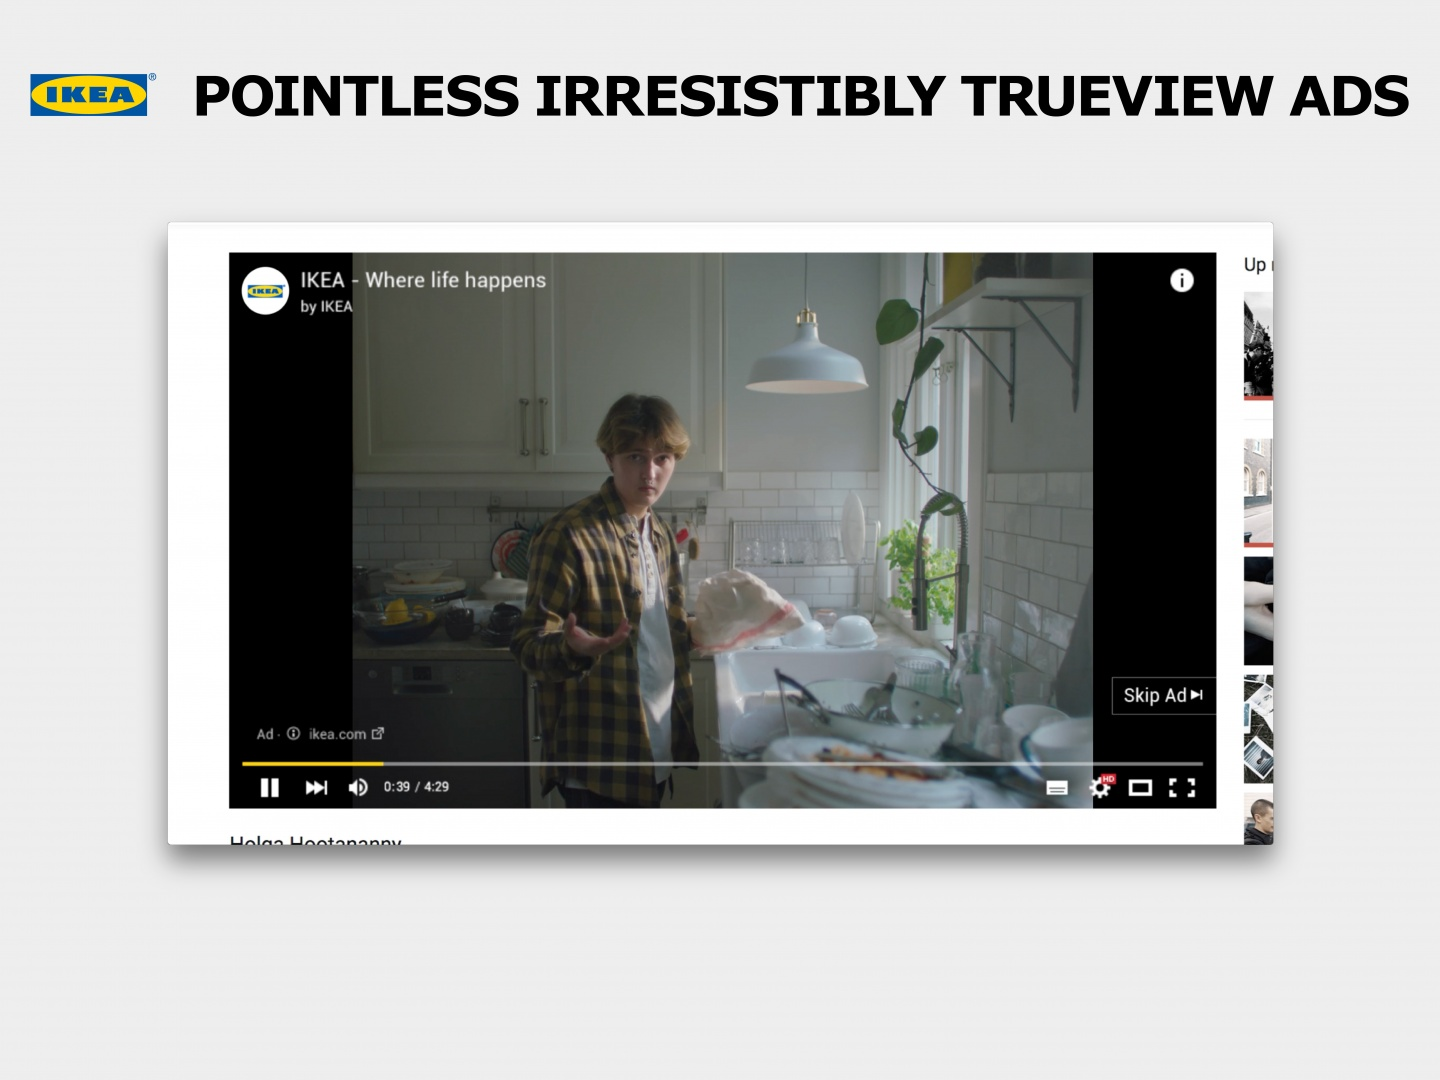 Dishwashing Thumbnail